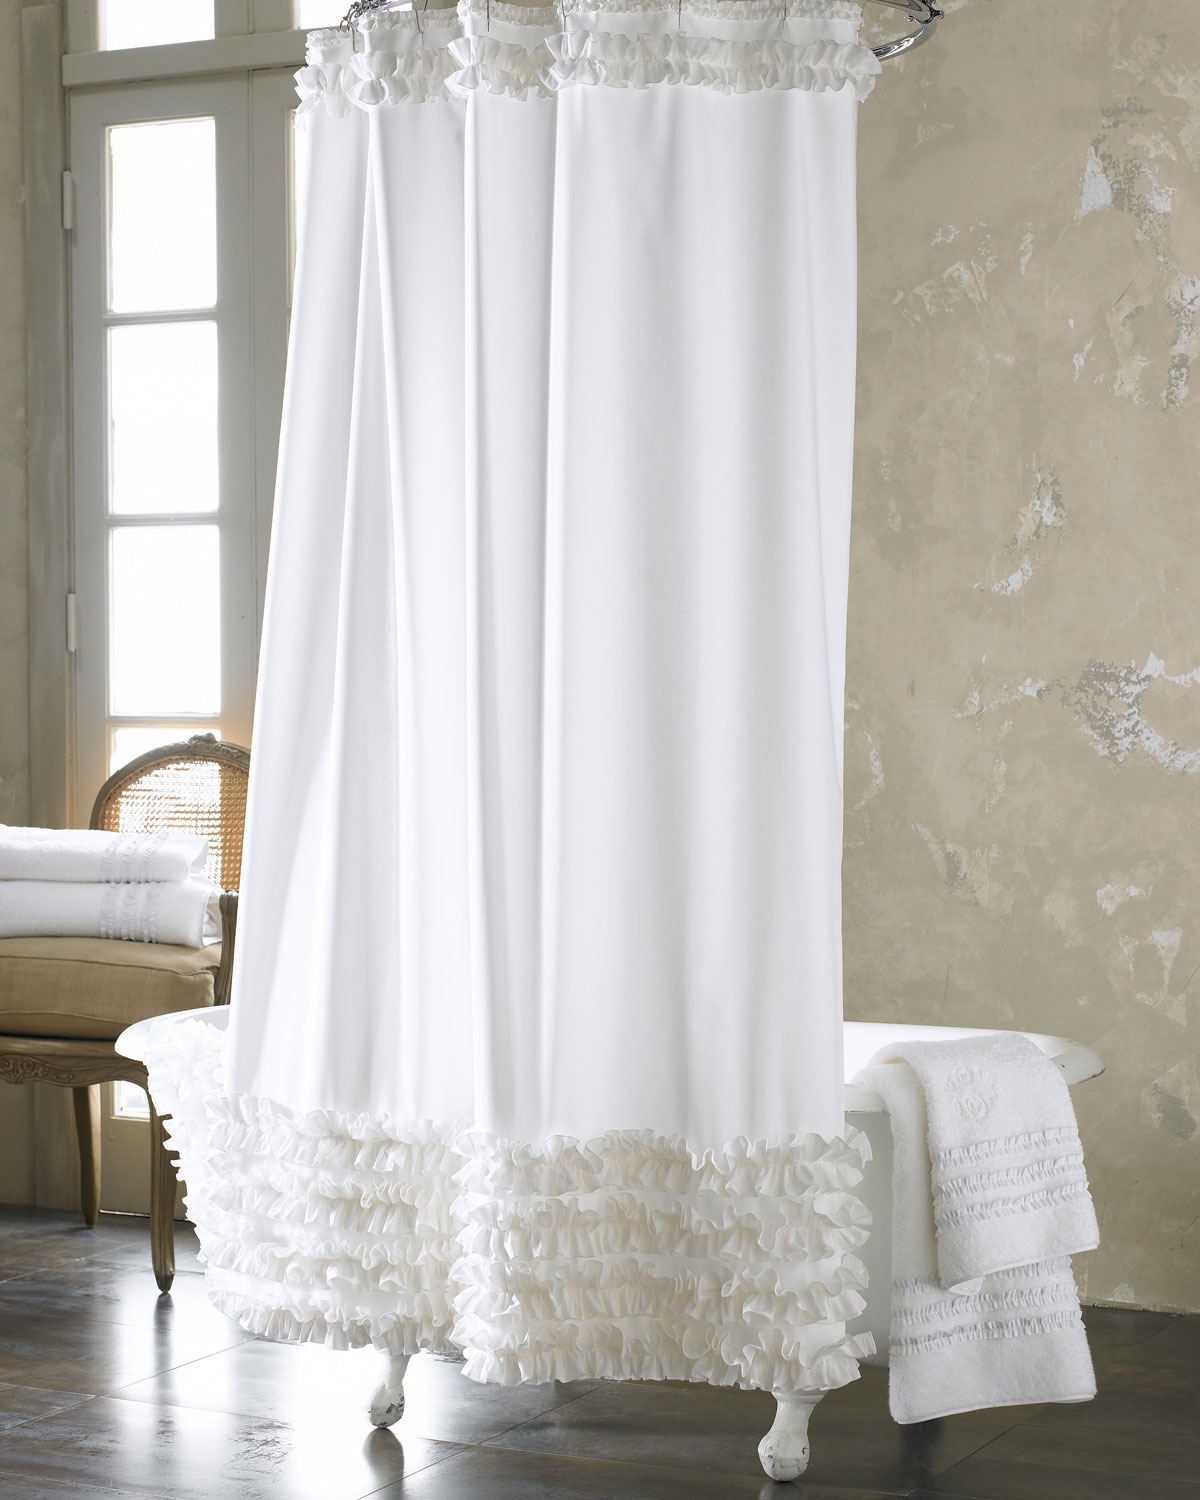 Fresh for spring and ready for romance: Ann Gish Ruffled Shower Curtain